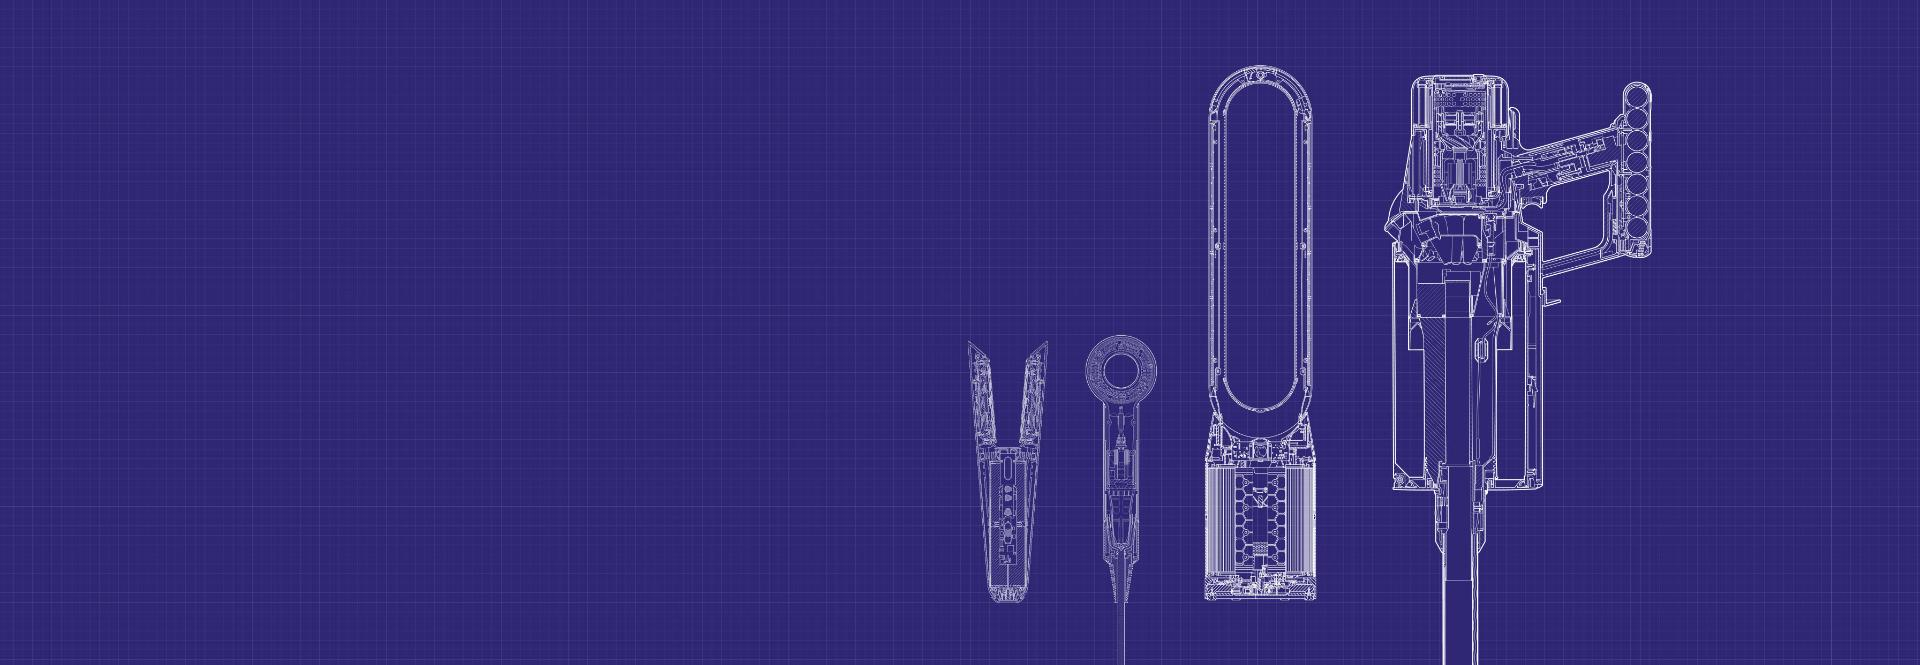 Technical drawings of Dyson Supersonic hair dryer, Dyson purifier and Dyson stick vacuum